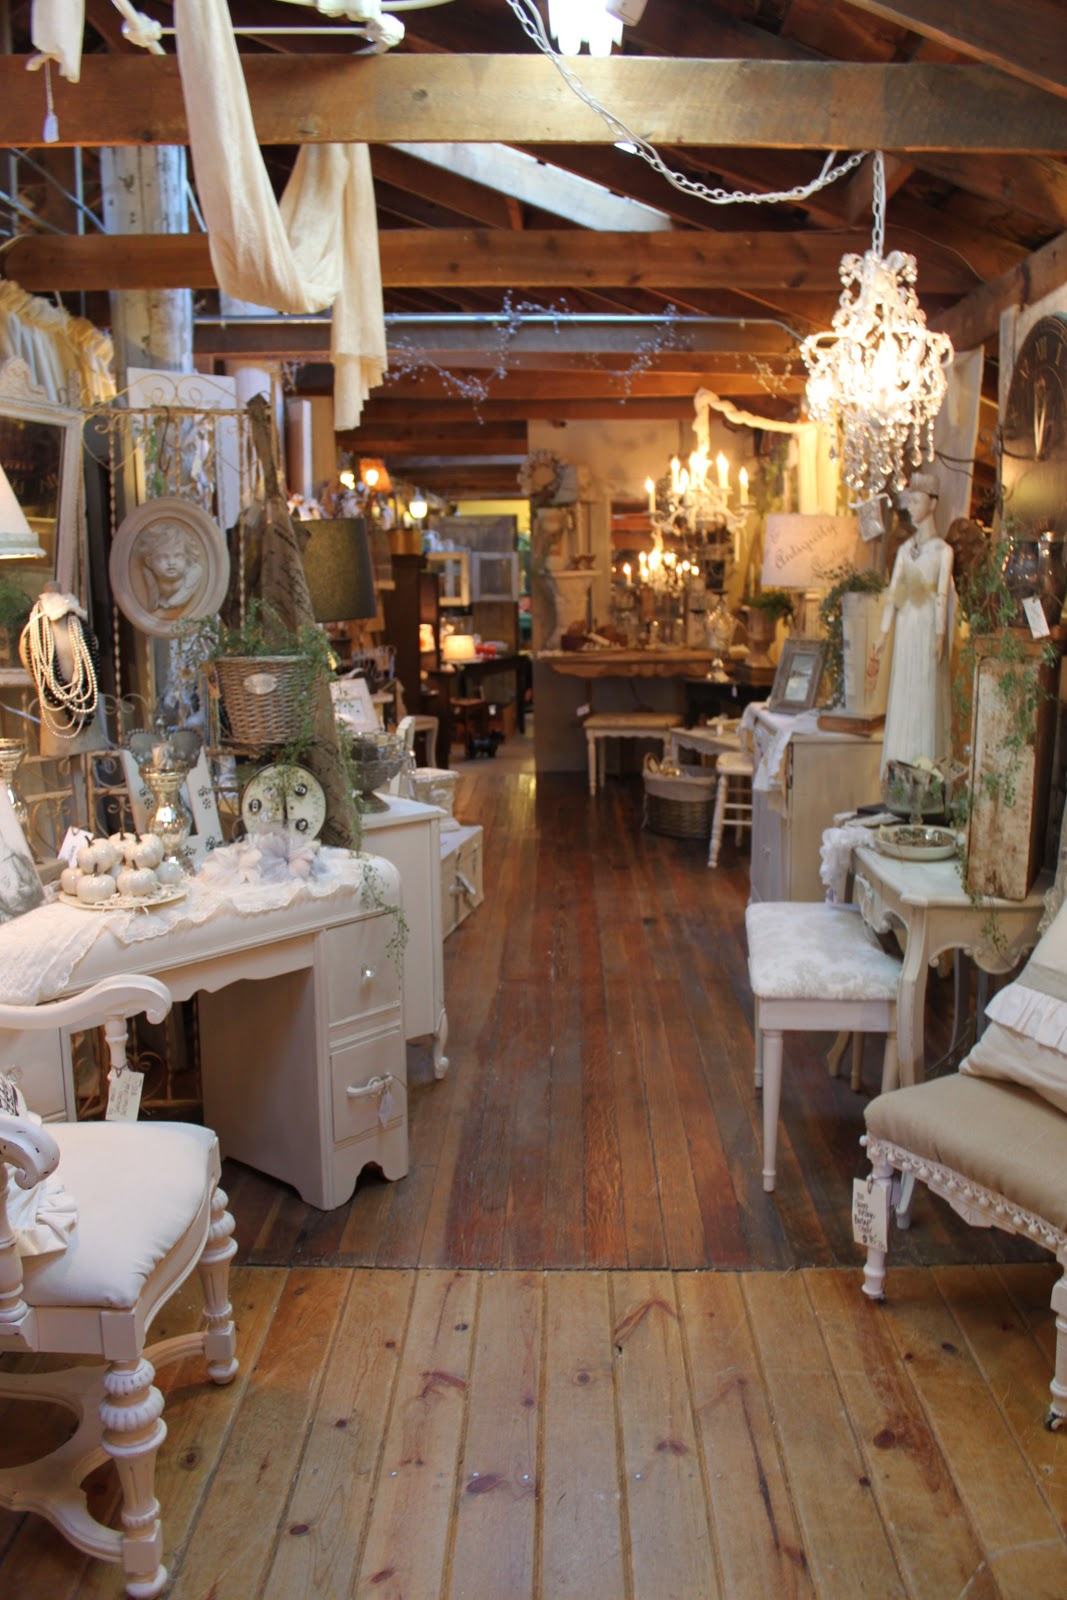 Shabby Chic Shop Vintage Sparkle Chic: Shabby, White And Shopping